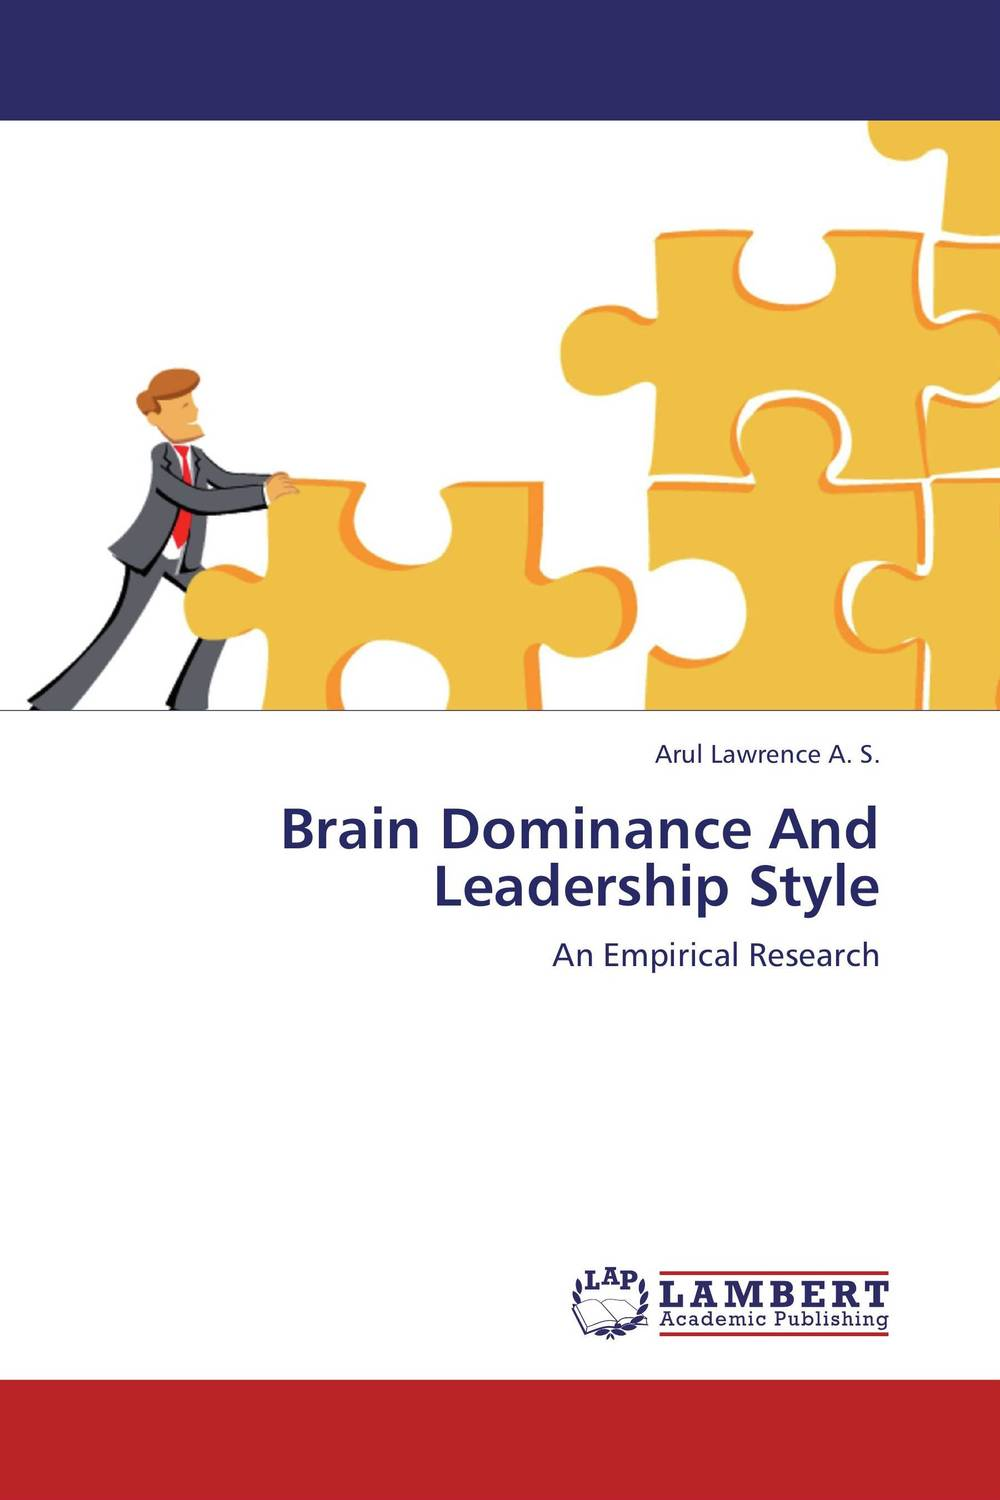 Brain Dominance And Leadership Style shahrzad dehghan kourosh akef and sholeh kolahi the role of brain dominance in translation quality